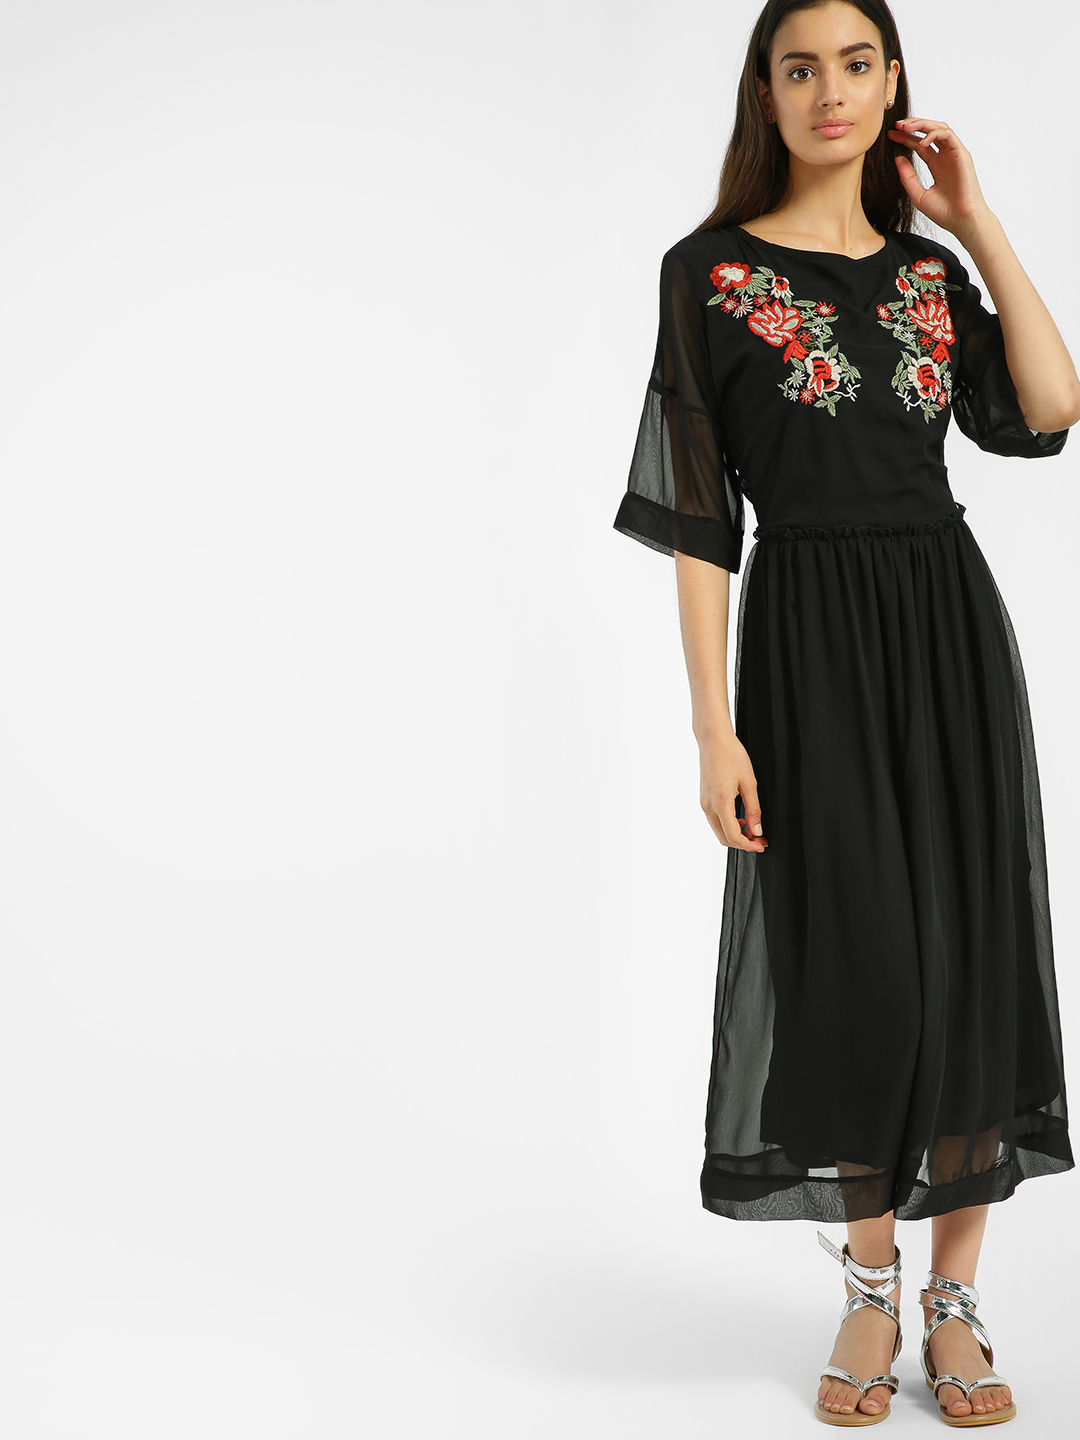 Blue Sequin Black Floral Embroidered Midi Dress 1